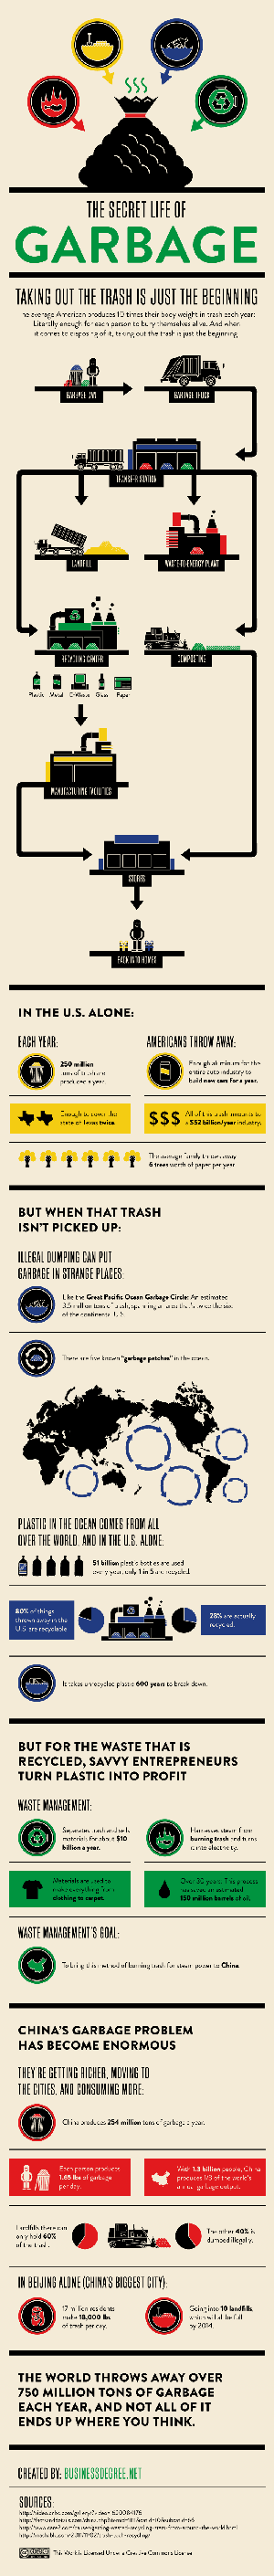 The Secret Life of Garbage